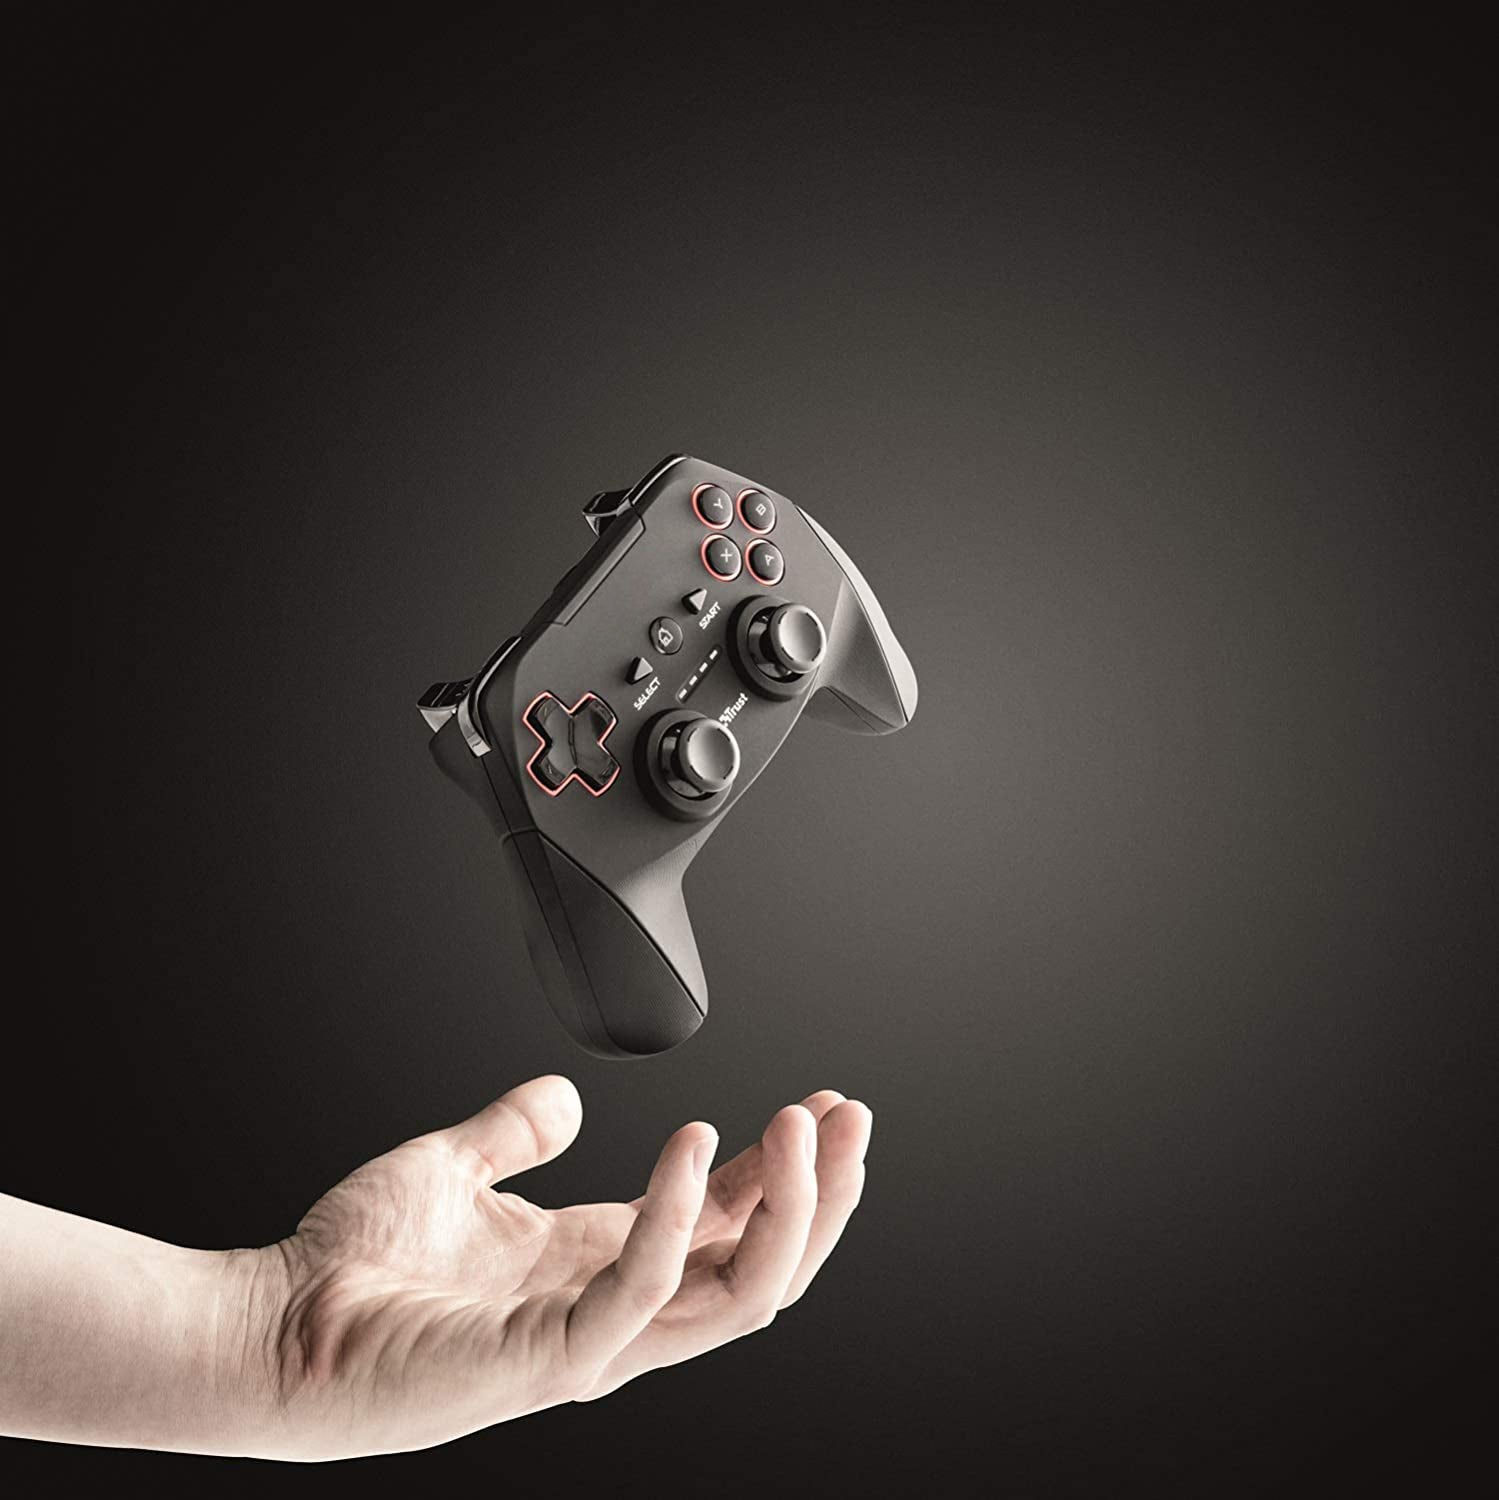 DroiX R1 Gamepad for Play Station 3, PC, RetroPie Gaming Console - Showing Controller being thrown in air